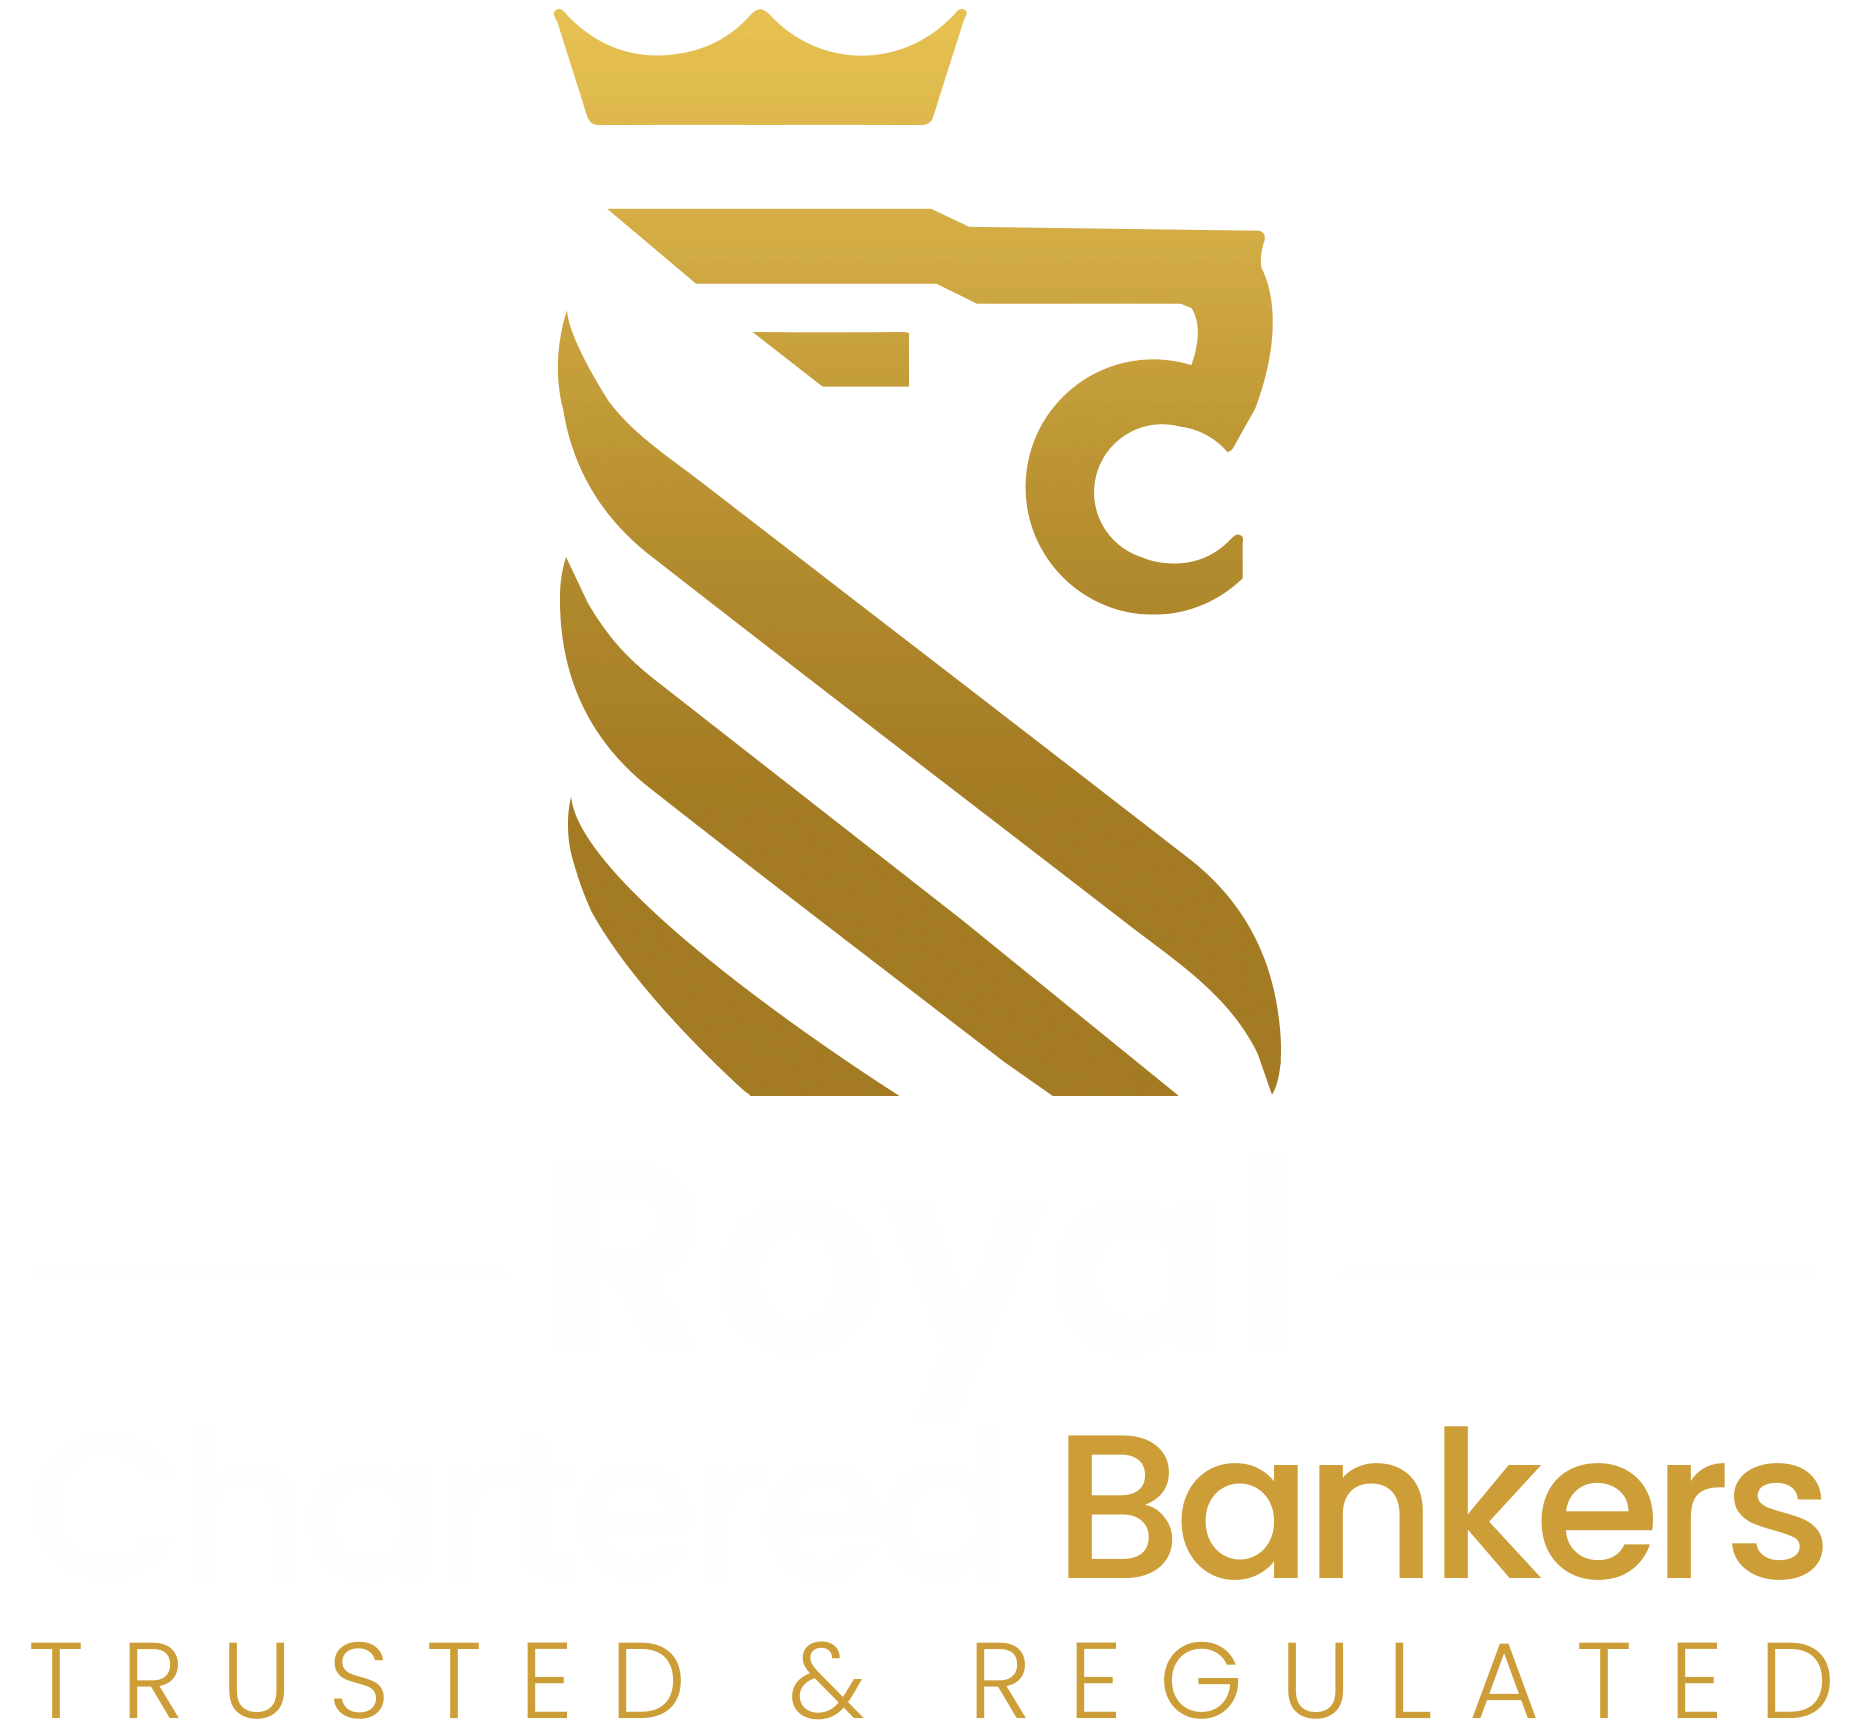 RC bankers